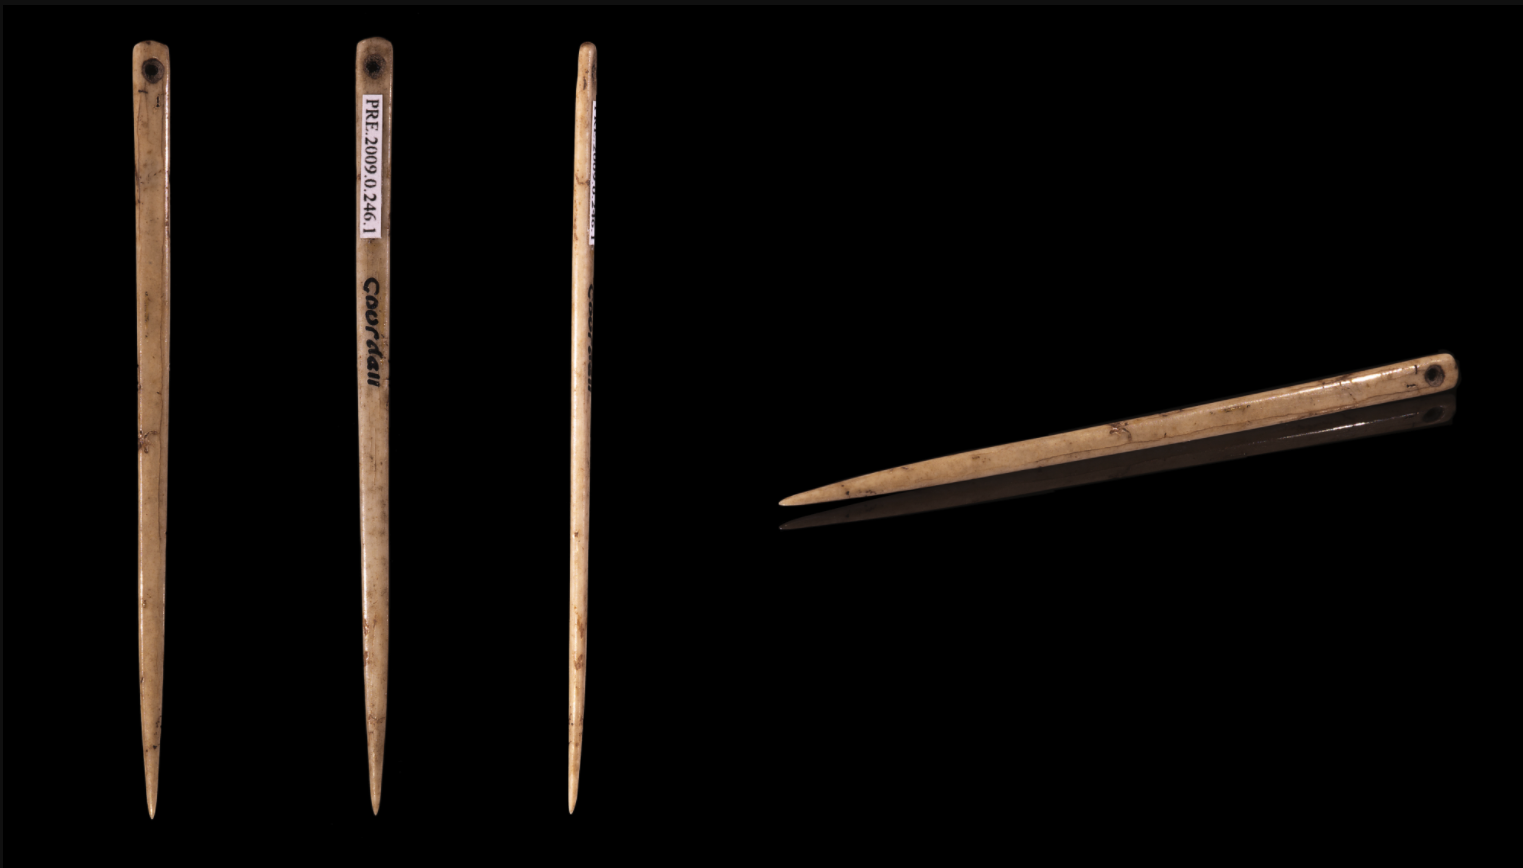 "In August 2020 I was unable locate a photograph of the bone point resembling a sewing needle found in Siduku Cave. This photograph shows several views of a single flat bone sewing needle from ""Elephant Cave,"" Gourdan–Polignan, Haute-Garonne, classified by Henri Filhol as Magdalenian Upper Paleolithic (between 17,000 and 10,000 BCE) Size : 59x3x2 mm. Muséum de Toulouse."